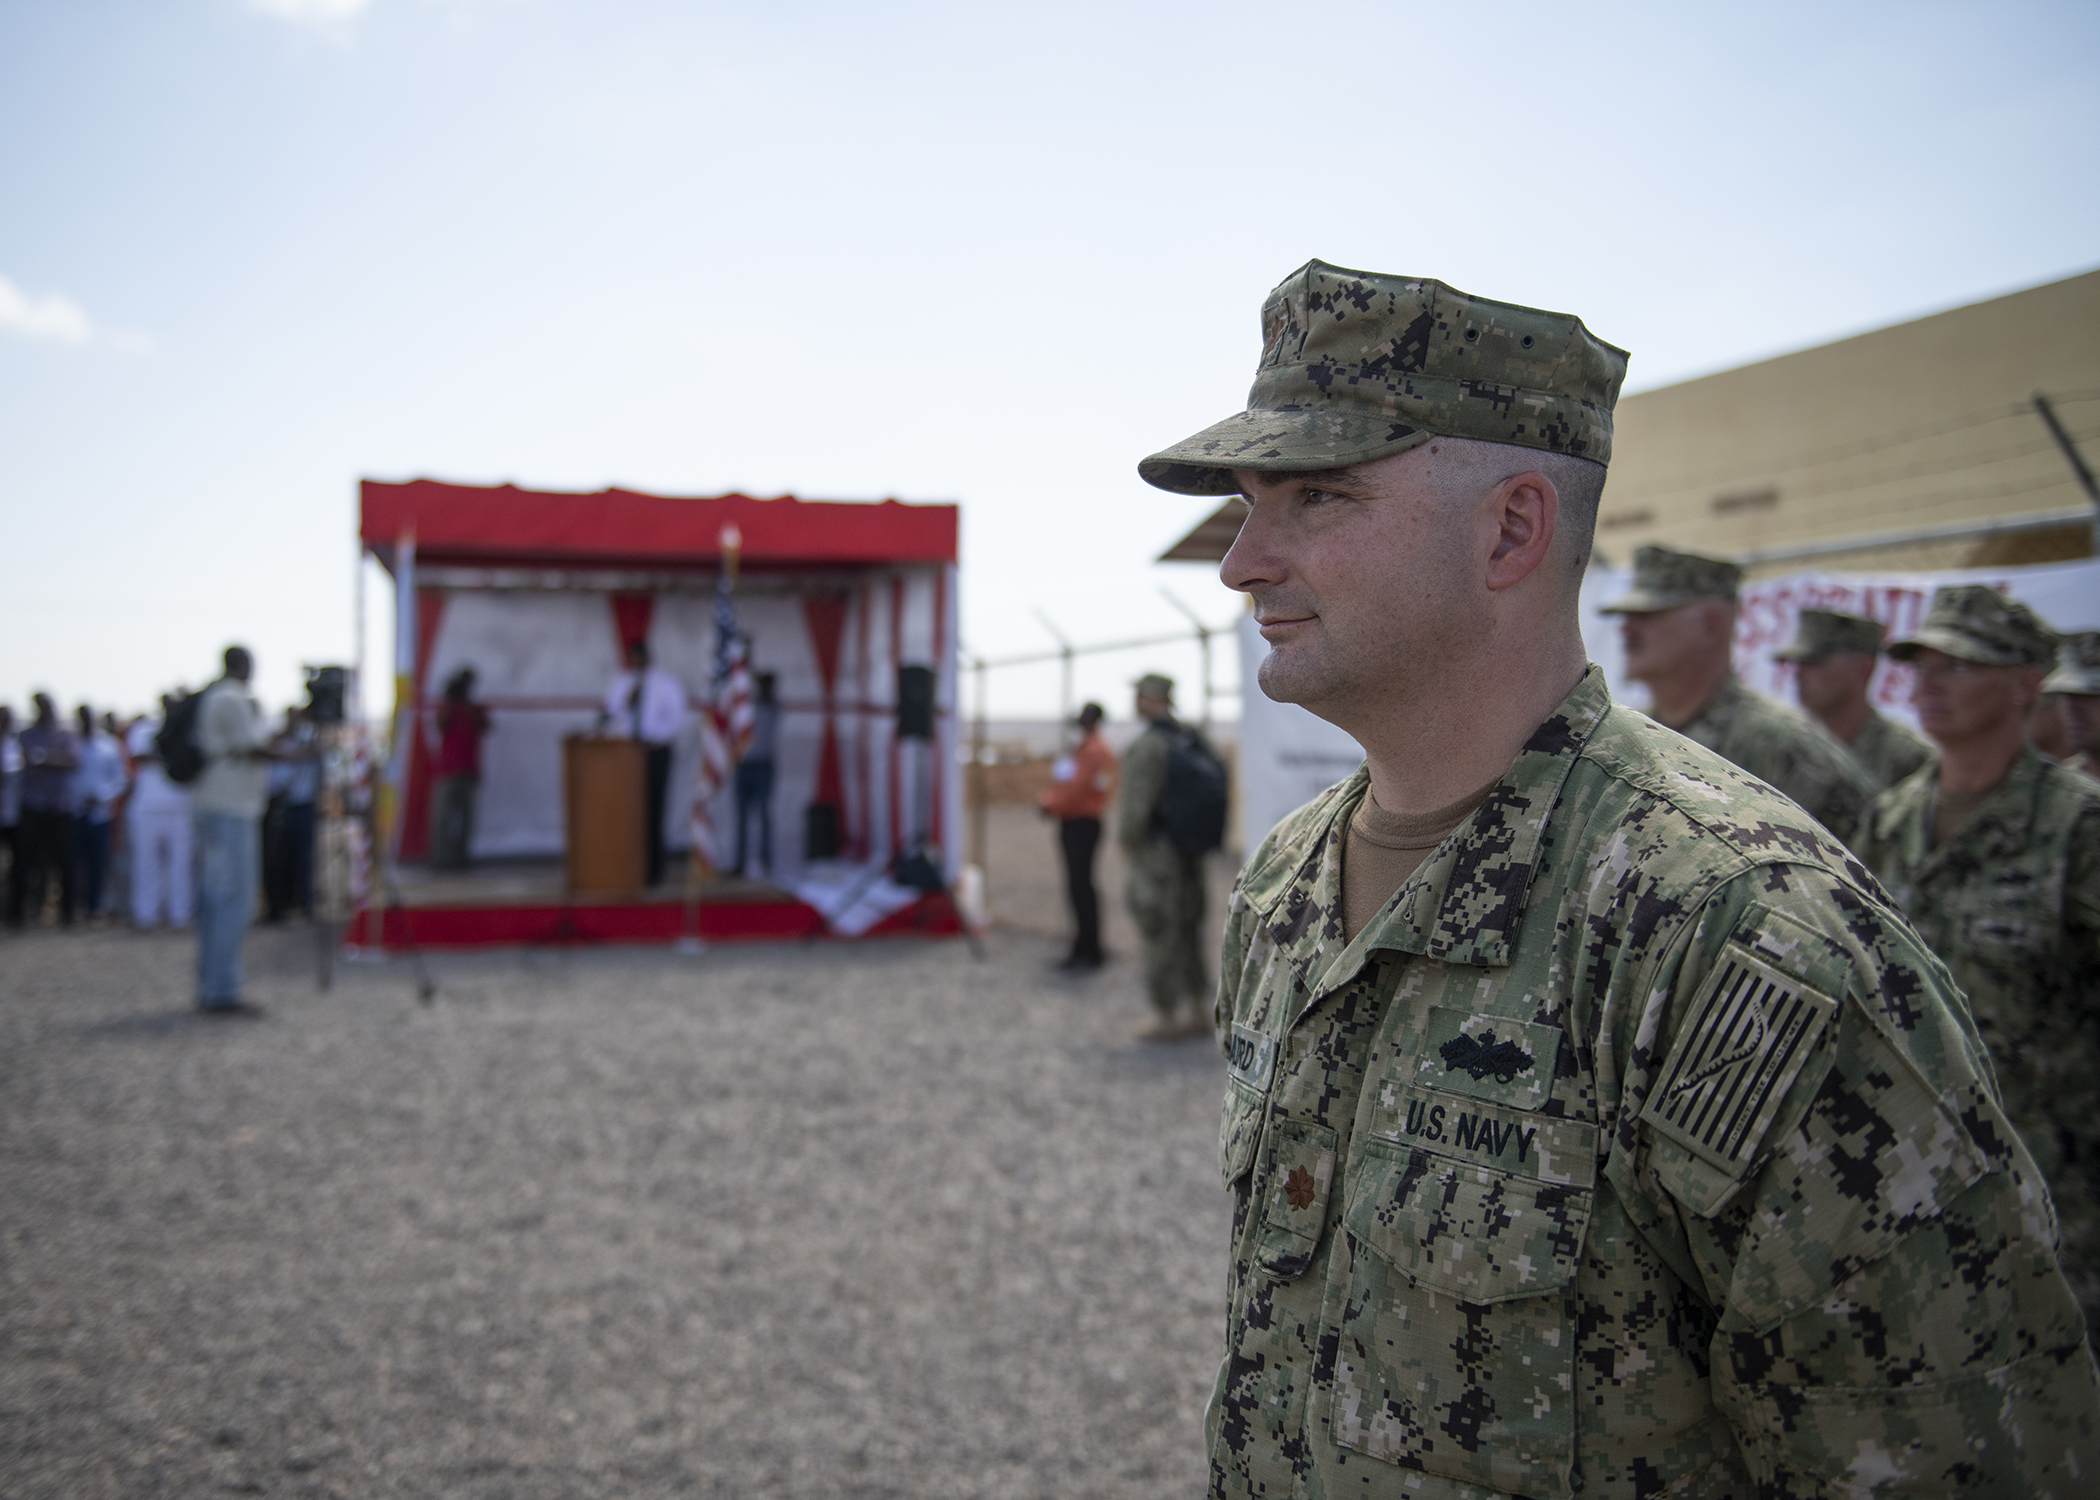 U.S. Navy Seabee Lt. Cmdr. Matthew Baird, detail officer in charge, Naval Mobile Construction Battalion 1, assigned to Combined Joint Task Force-Horn of Africa (CJTF-HOA), leads a formation during the Ali Oune Medical Clinic ribbon cutting ceremony in Ali Oune, Djibouti, Jan. 31, 2019. The clinic, which the Seabees have worked on for five months, is intended to enhance the Ministry of Health for Djibouti's ability to provide basic medical, birth and after care to the Ali Oune village and its more than 1,000 residents and rural neighbors. (U.S. Air Force photo by Tech. Sgt. Shawn Nickel)